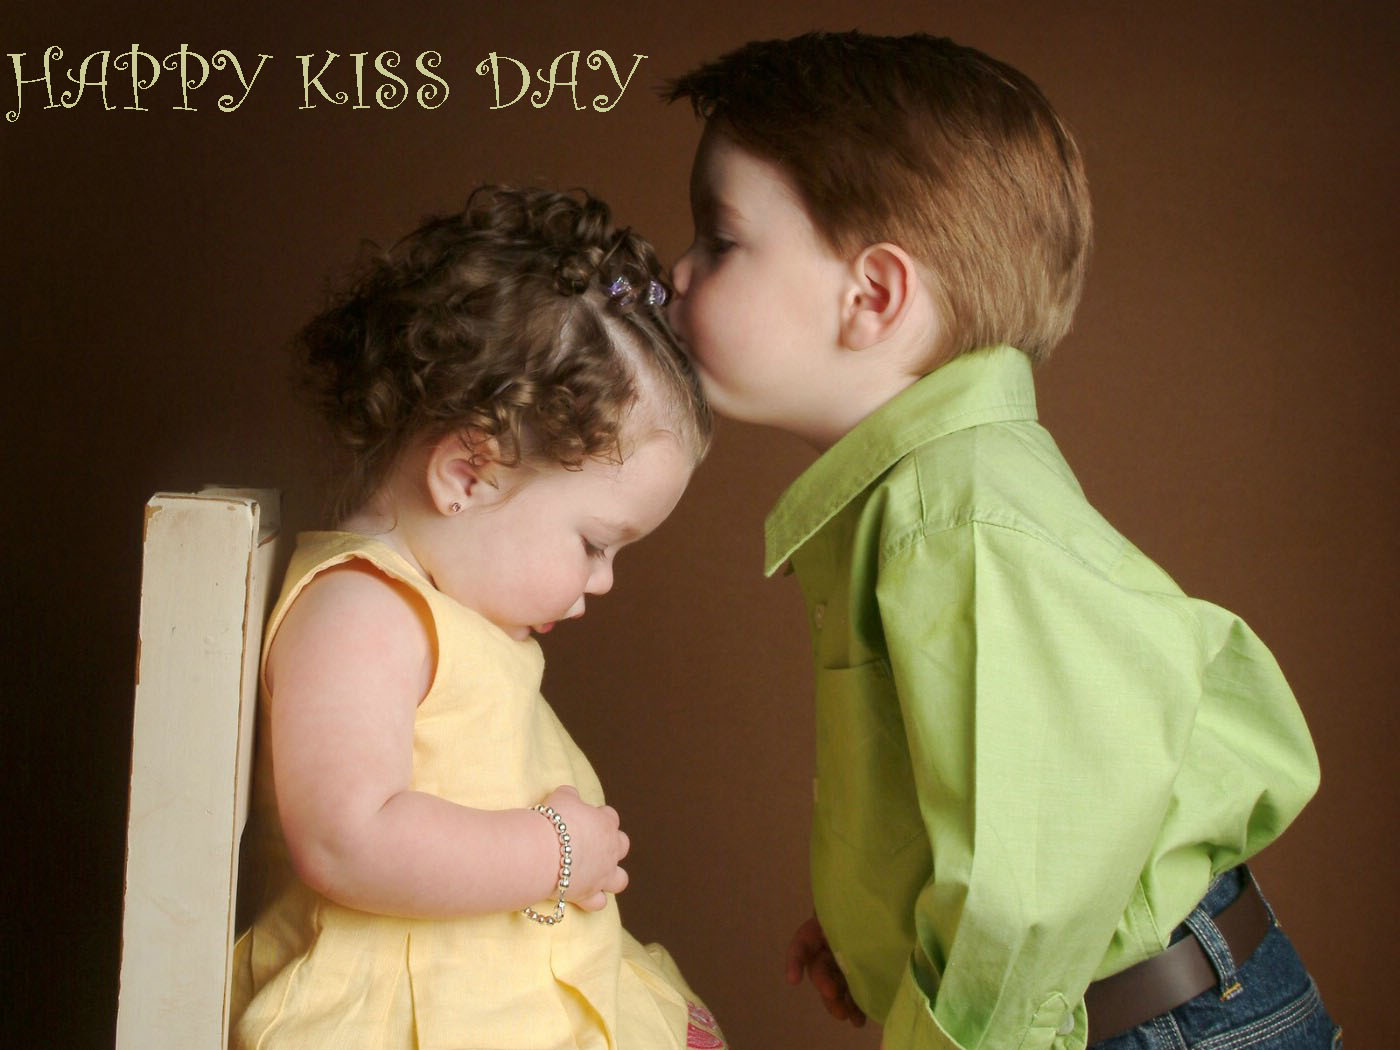 Elegant Kiss Day Wishes